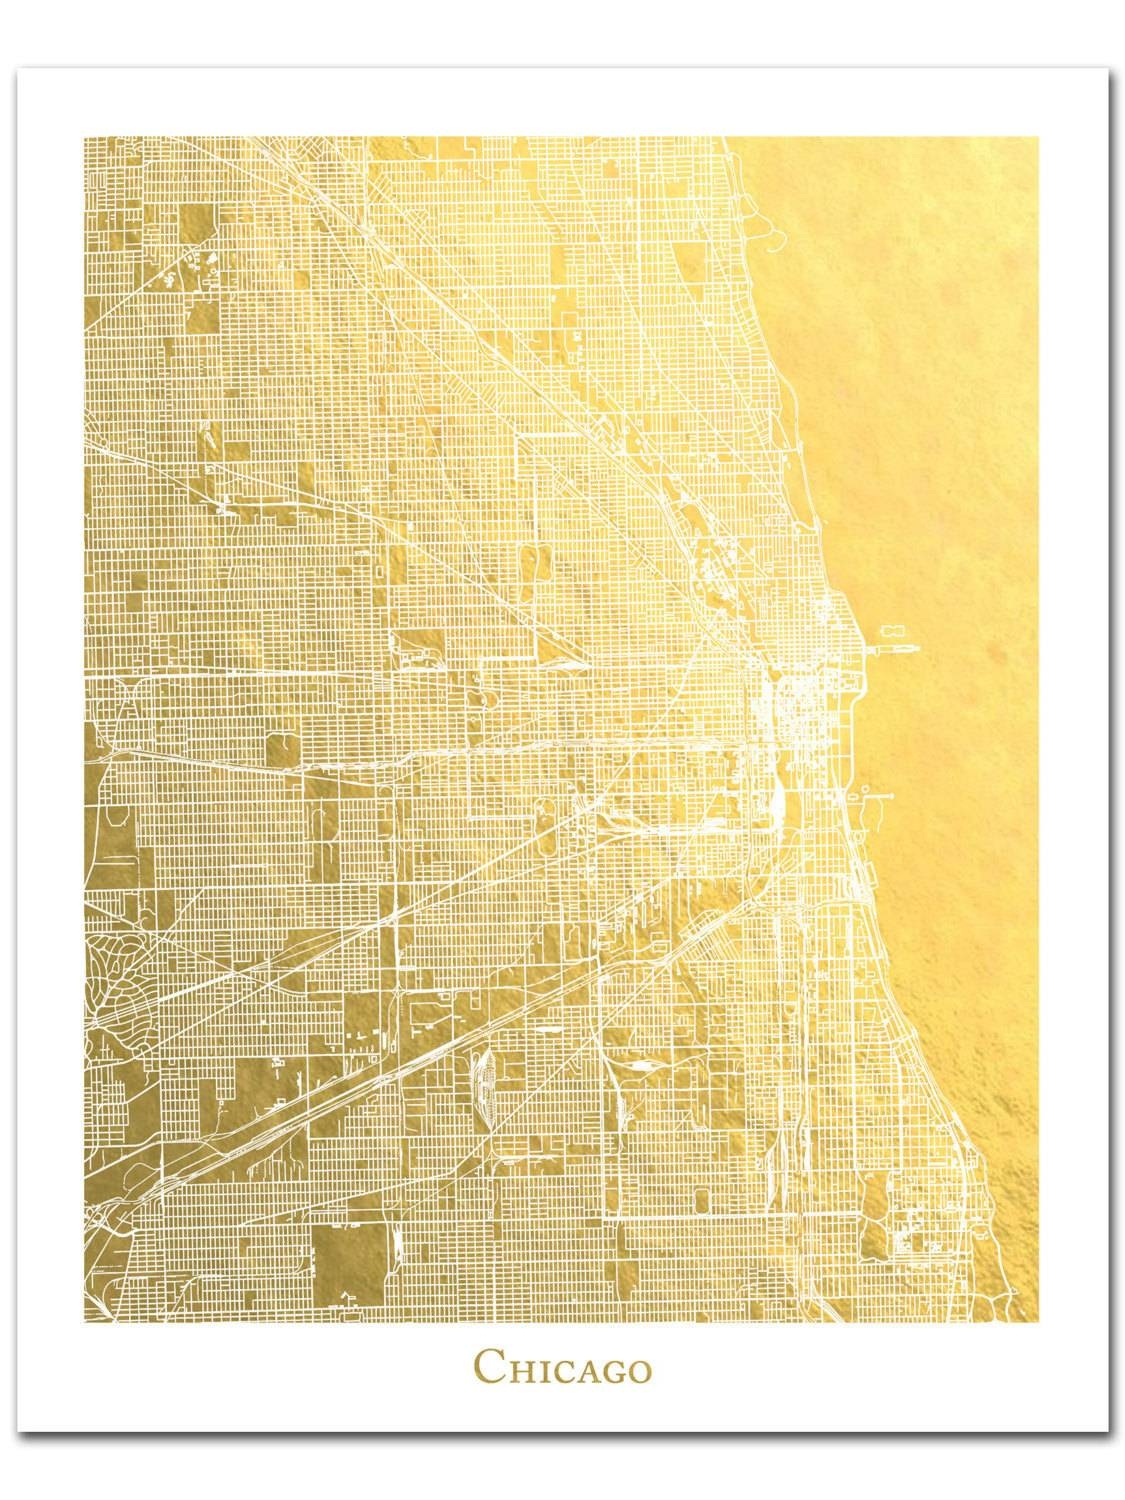 Chicago Map Chicago Print Gold Foil Print Gold Foil Map™ Pertaining To 2018 Chicago Map Wall Art (View 3 of 20)